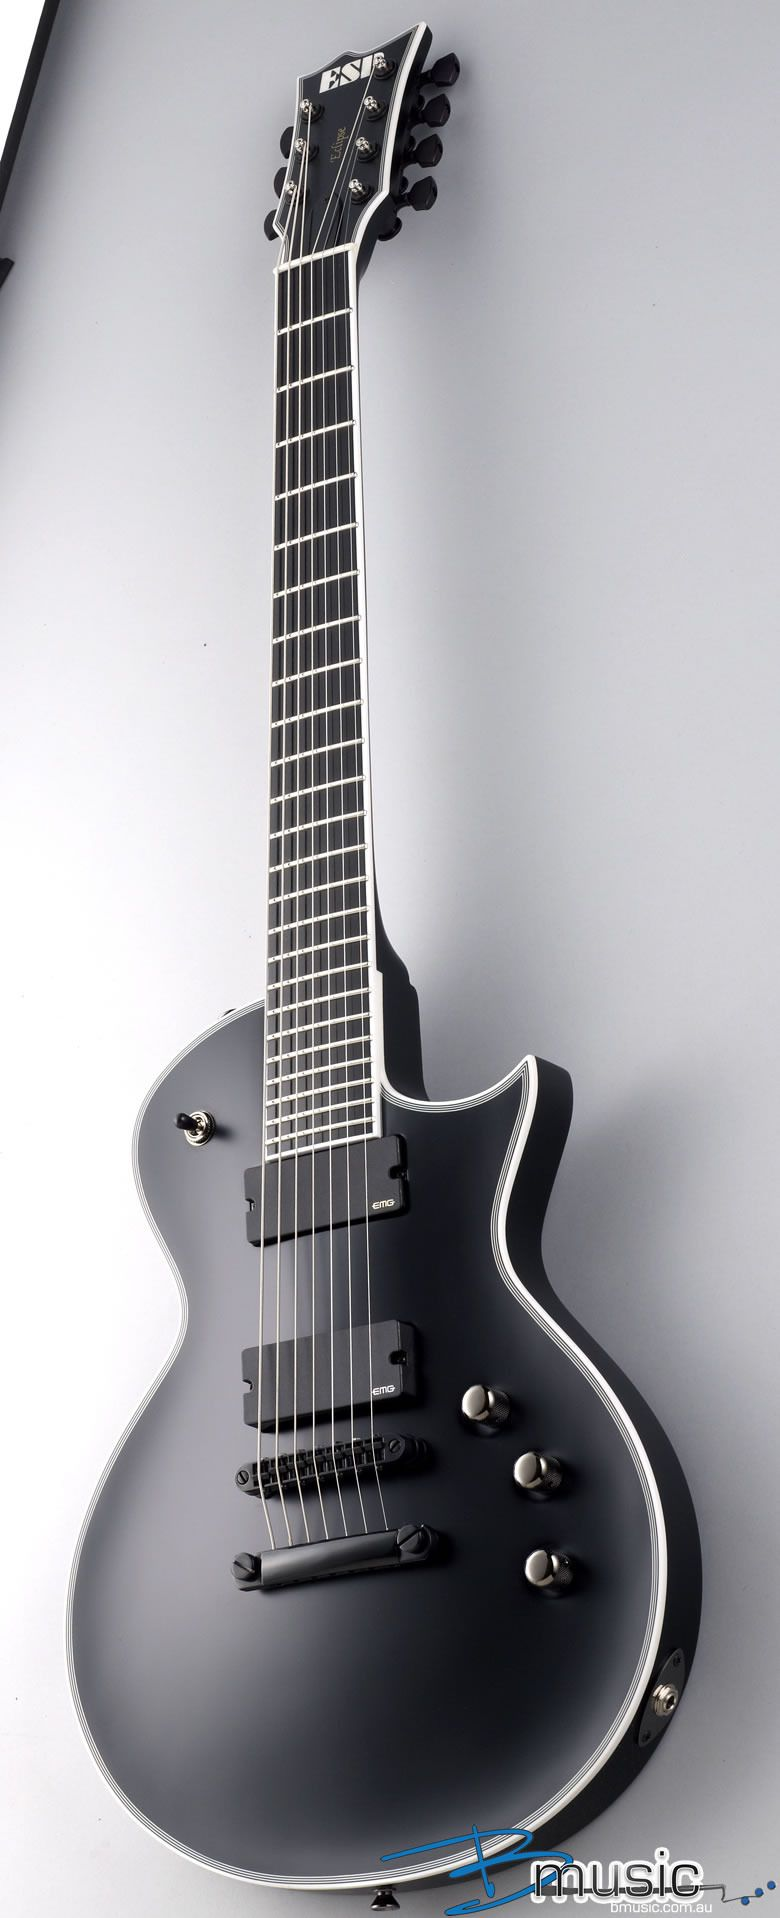 Esp 7 String >> Pin By Ryan Sims On Rock N Roll In 2019 Music Guitar